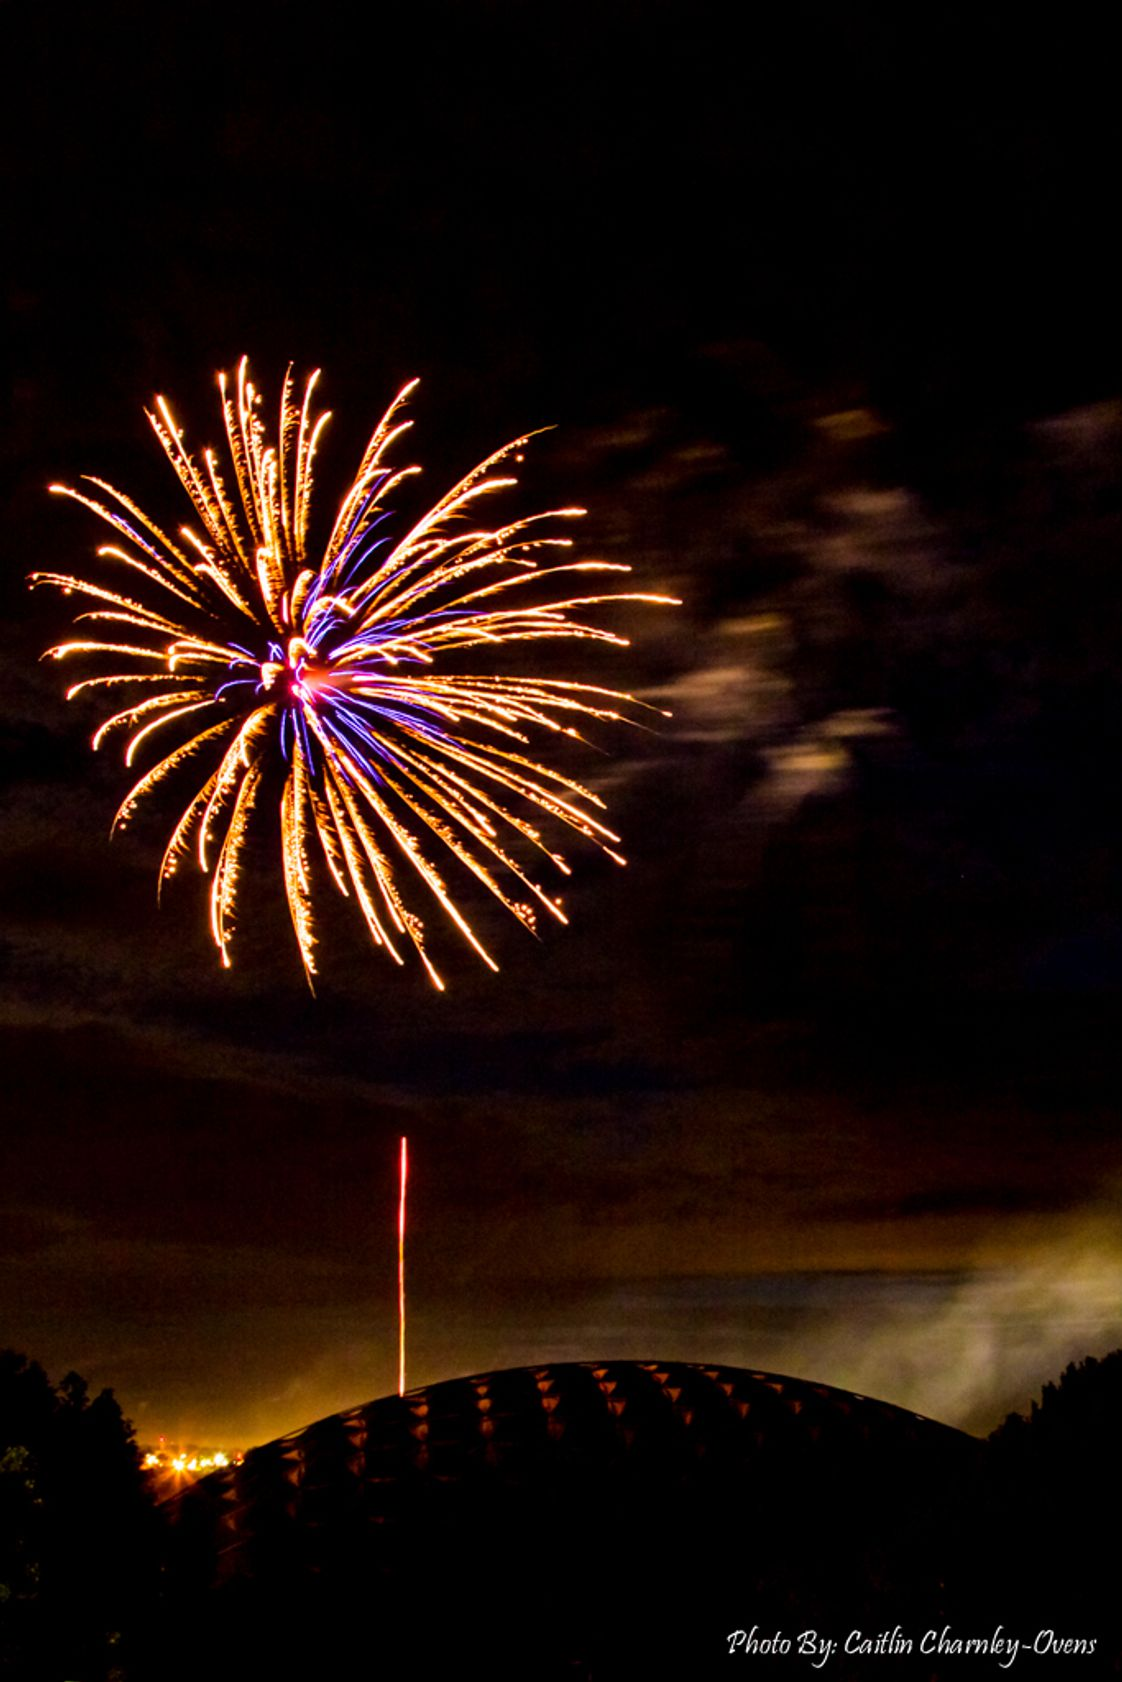 Walla Walla Community College Photo #1 - The Fourth of July is celebrated with fireworks over the Dietrich Dome on Walla Walla Community College's campus